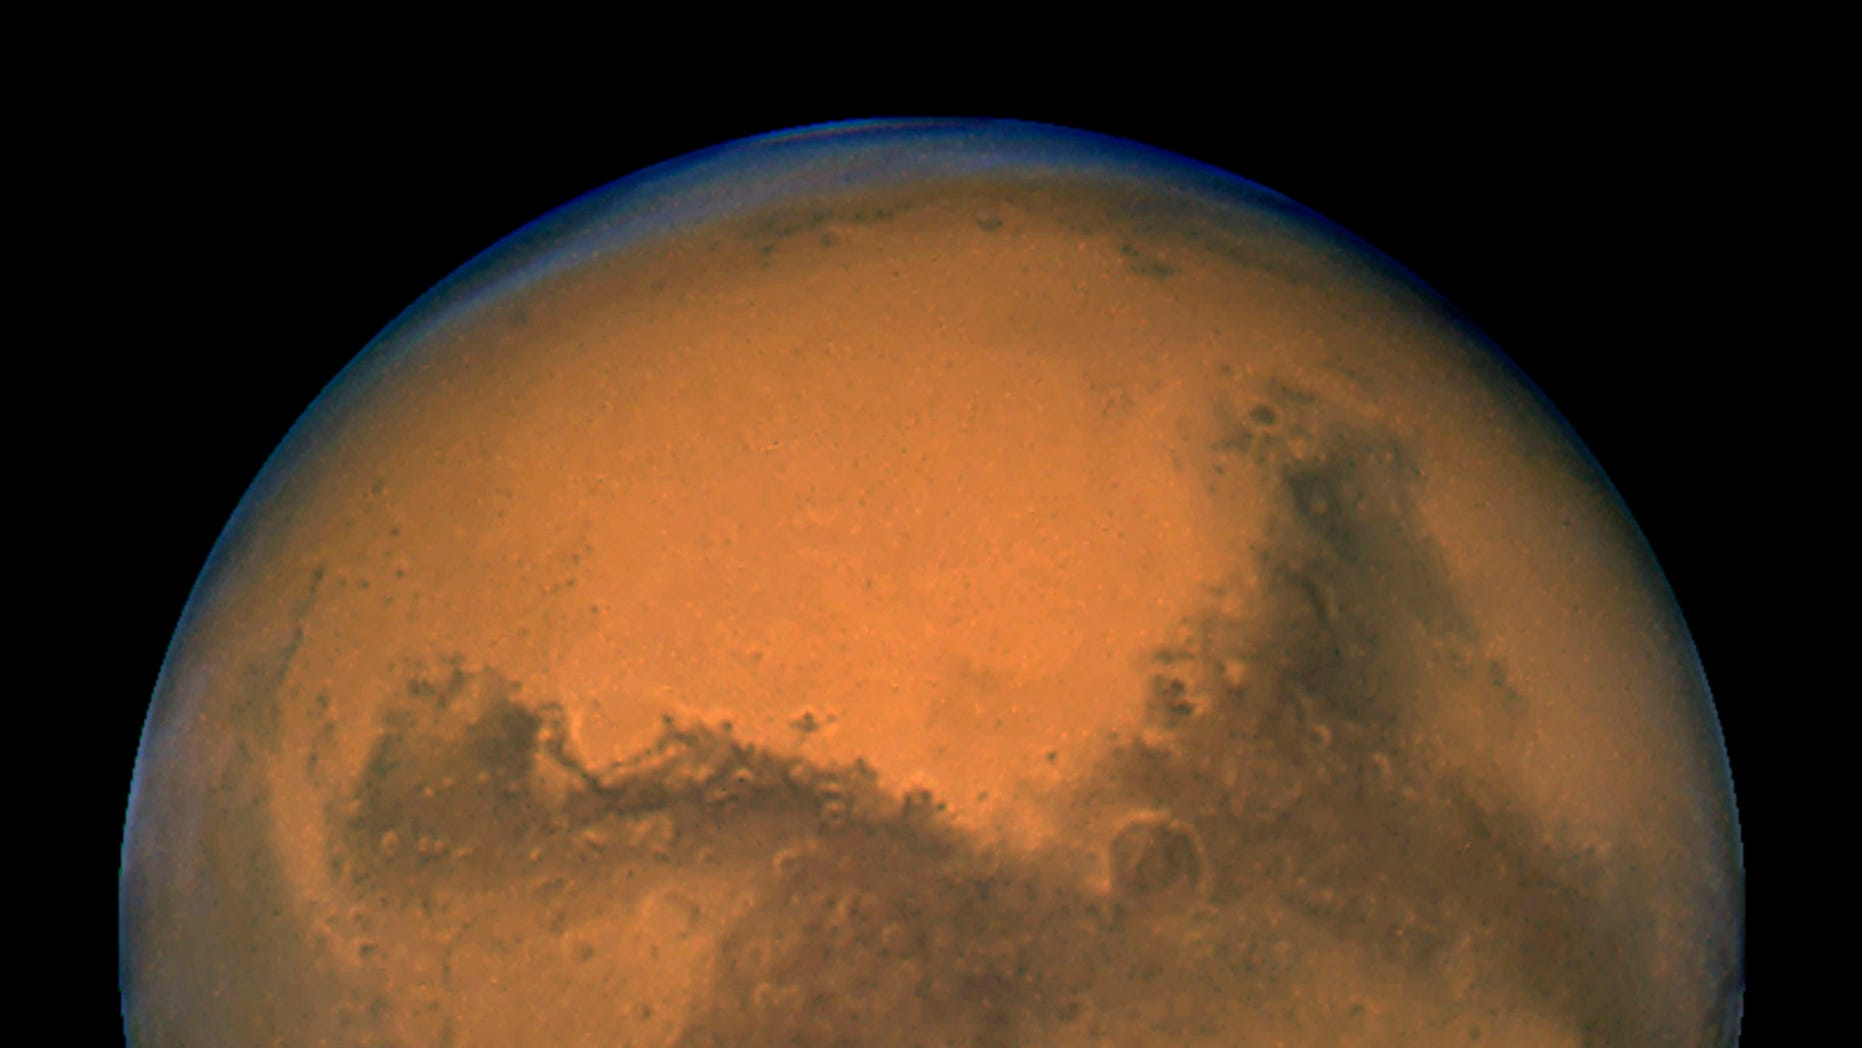 August 27, 2003: NASA's Hubble Space Telescope snapped this portrait of Mars within minutes of the planet's closest approach to Earth in nearly 60,000 years.